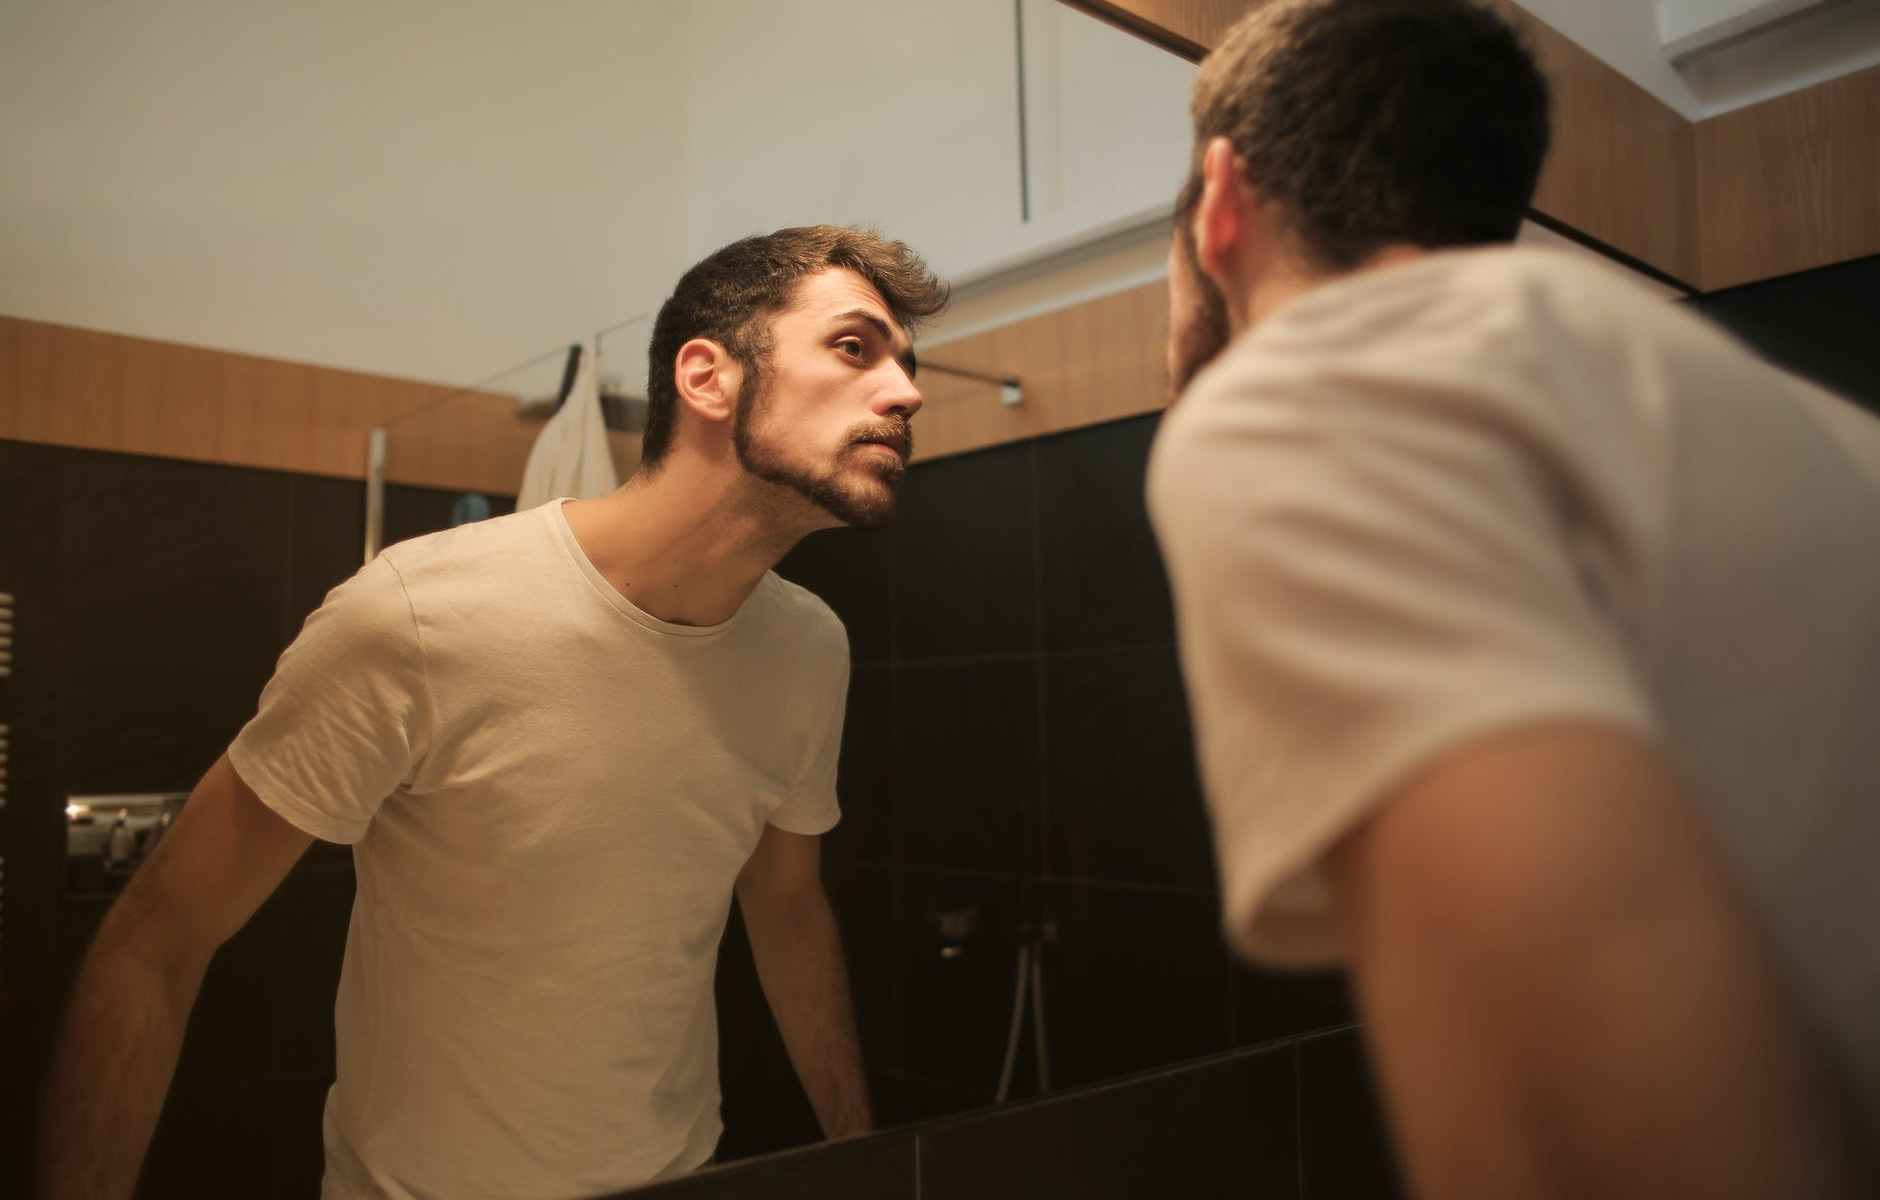 stylish concentrated man looking in mirror in bathroom